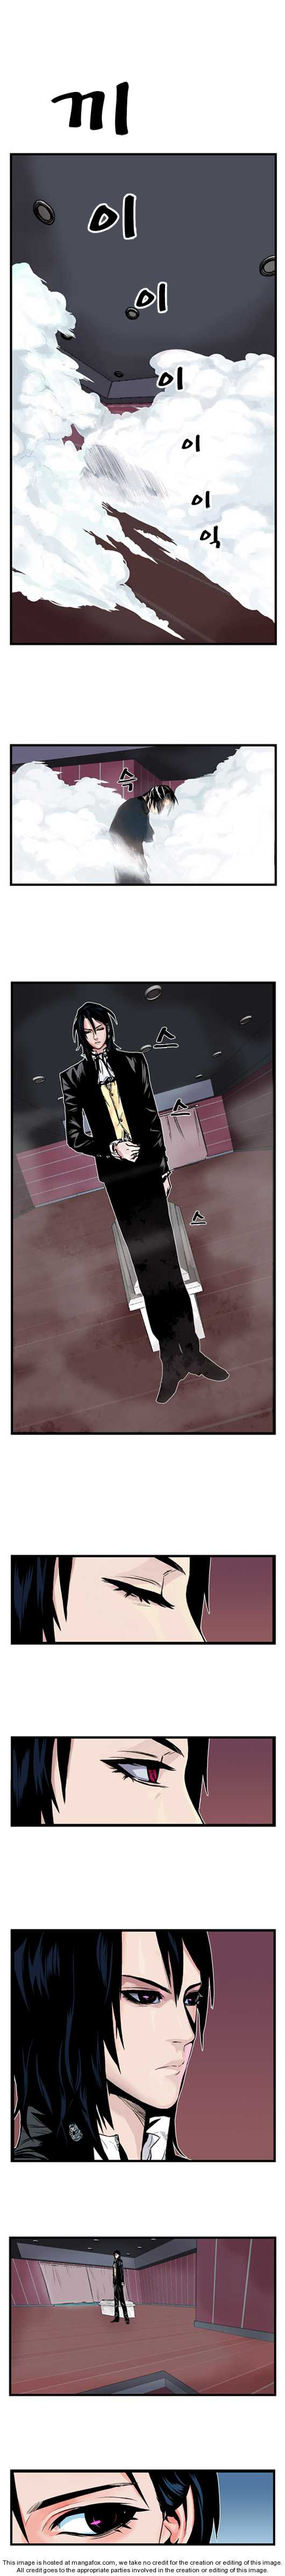 Noblesse 1 Page 2